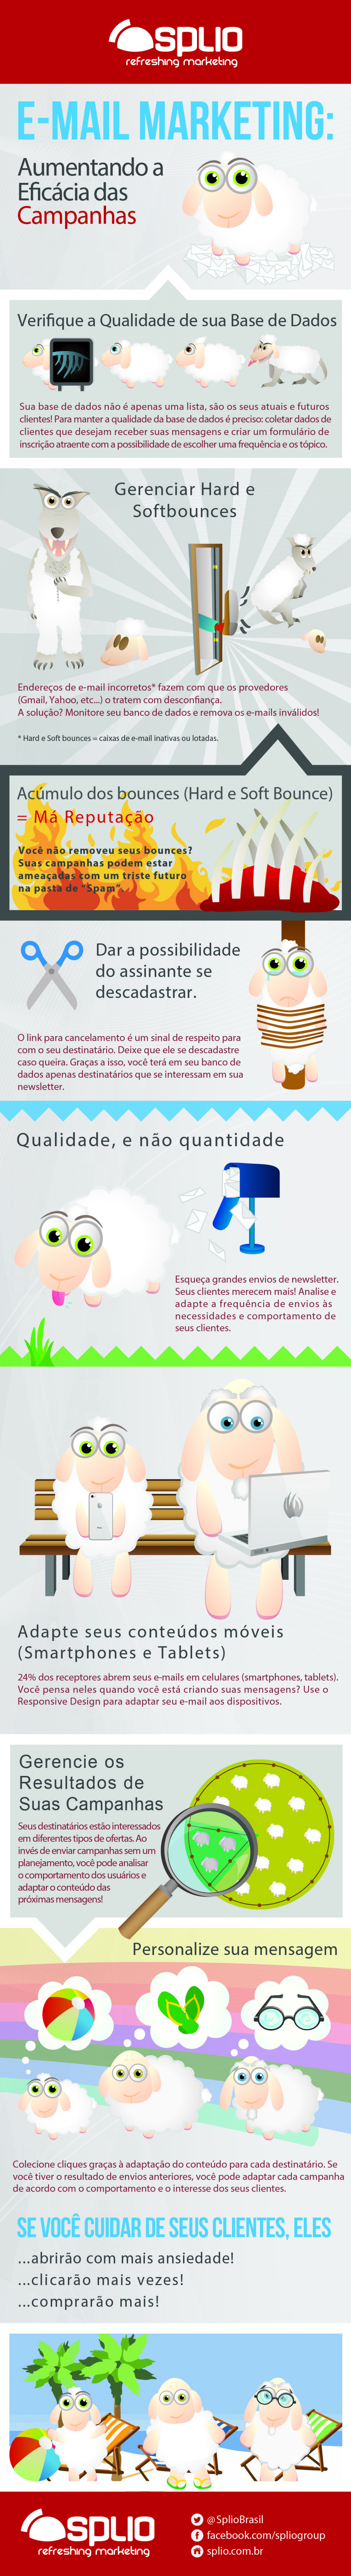 E-mail Marketing - Aumentando a Eficácia das Campanhas Infographic